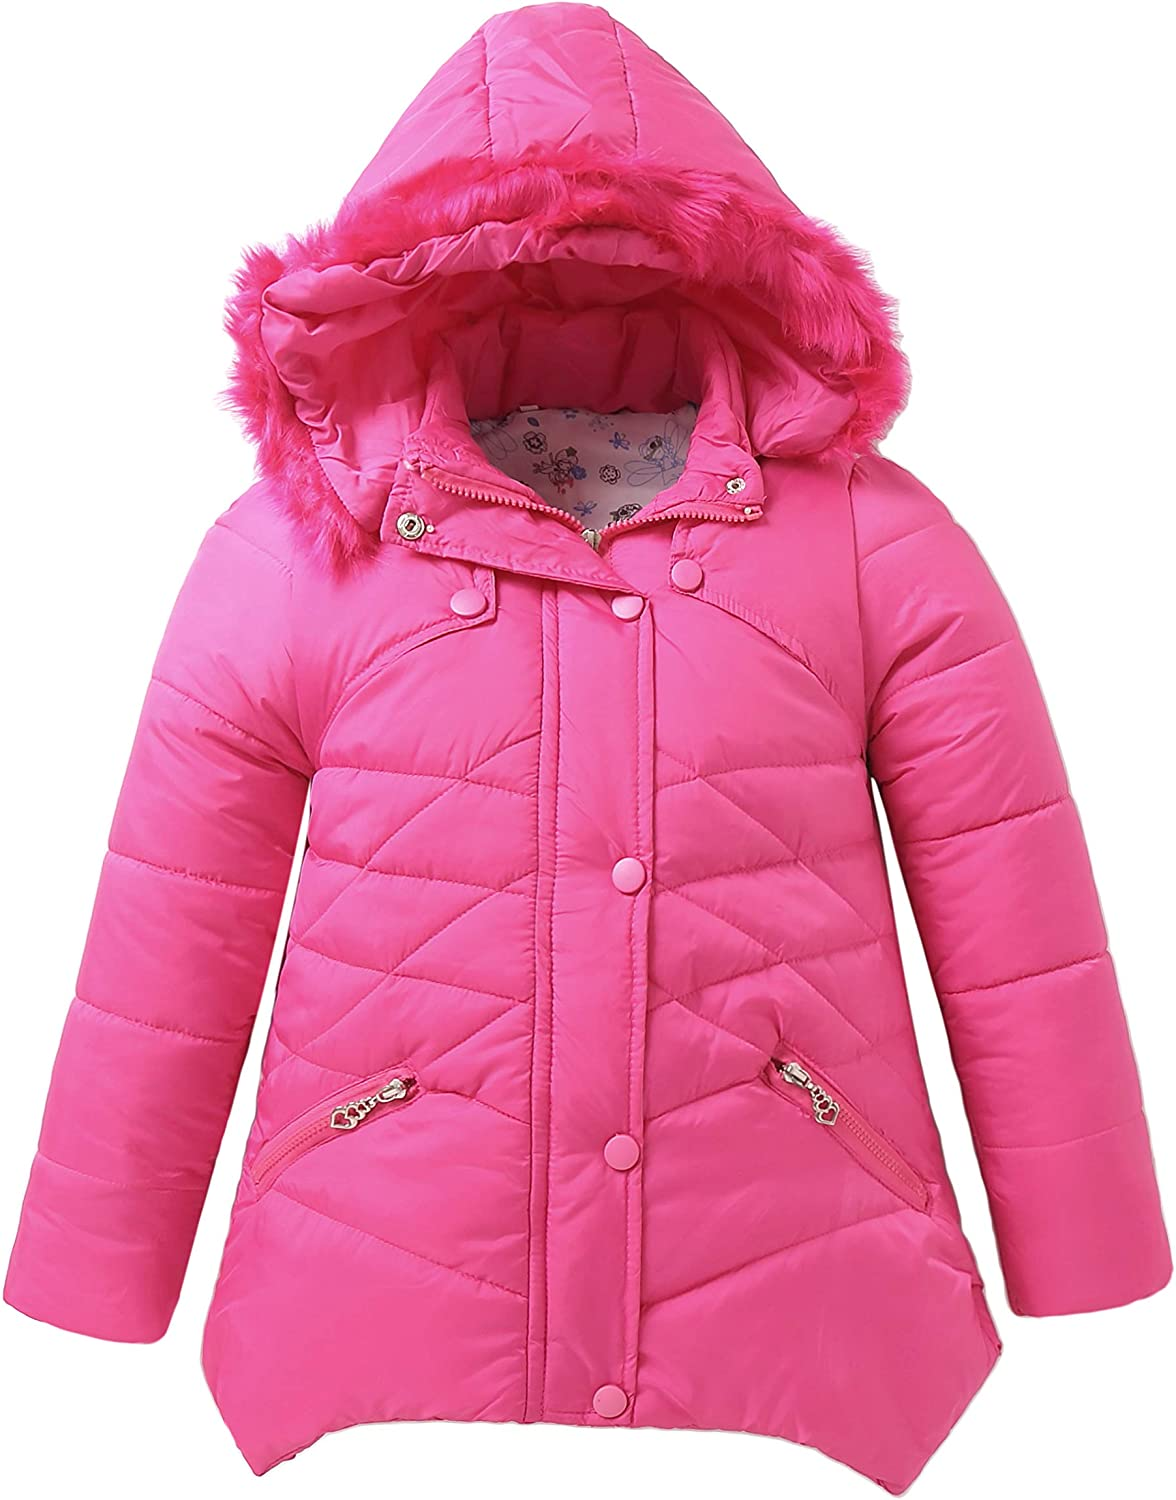 AvaCostume Boys Chinese Traditional Tang Coat Winter Warm Jackets